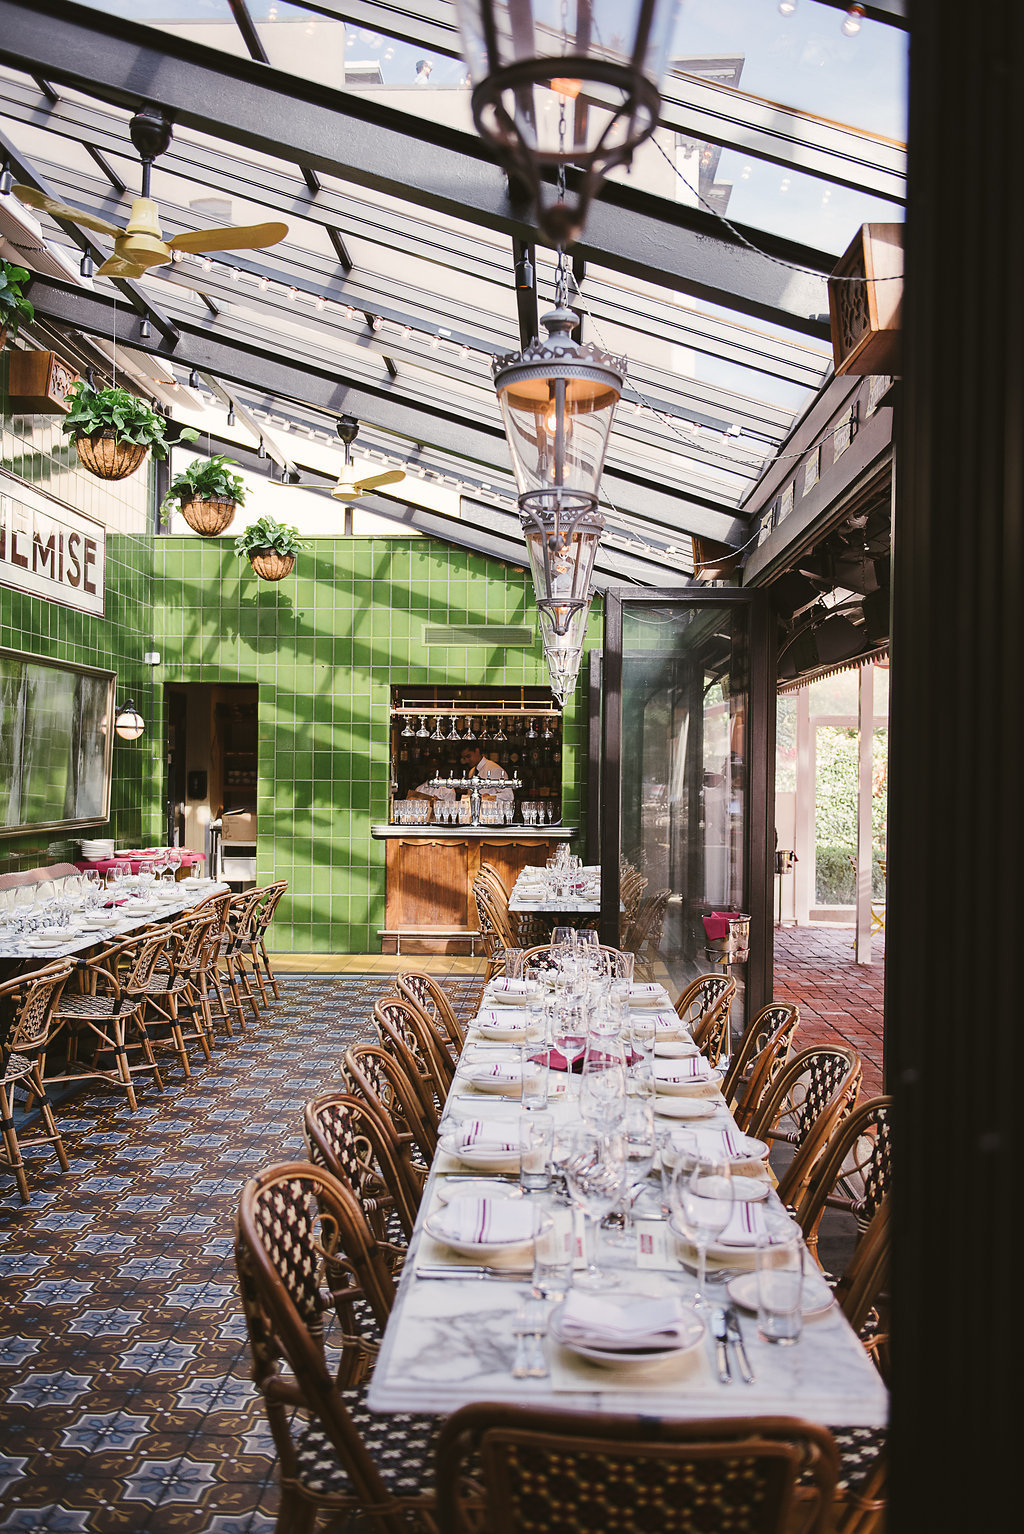 Le Diplomate, French restaurant in Washington, D.C.